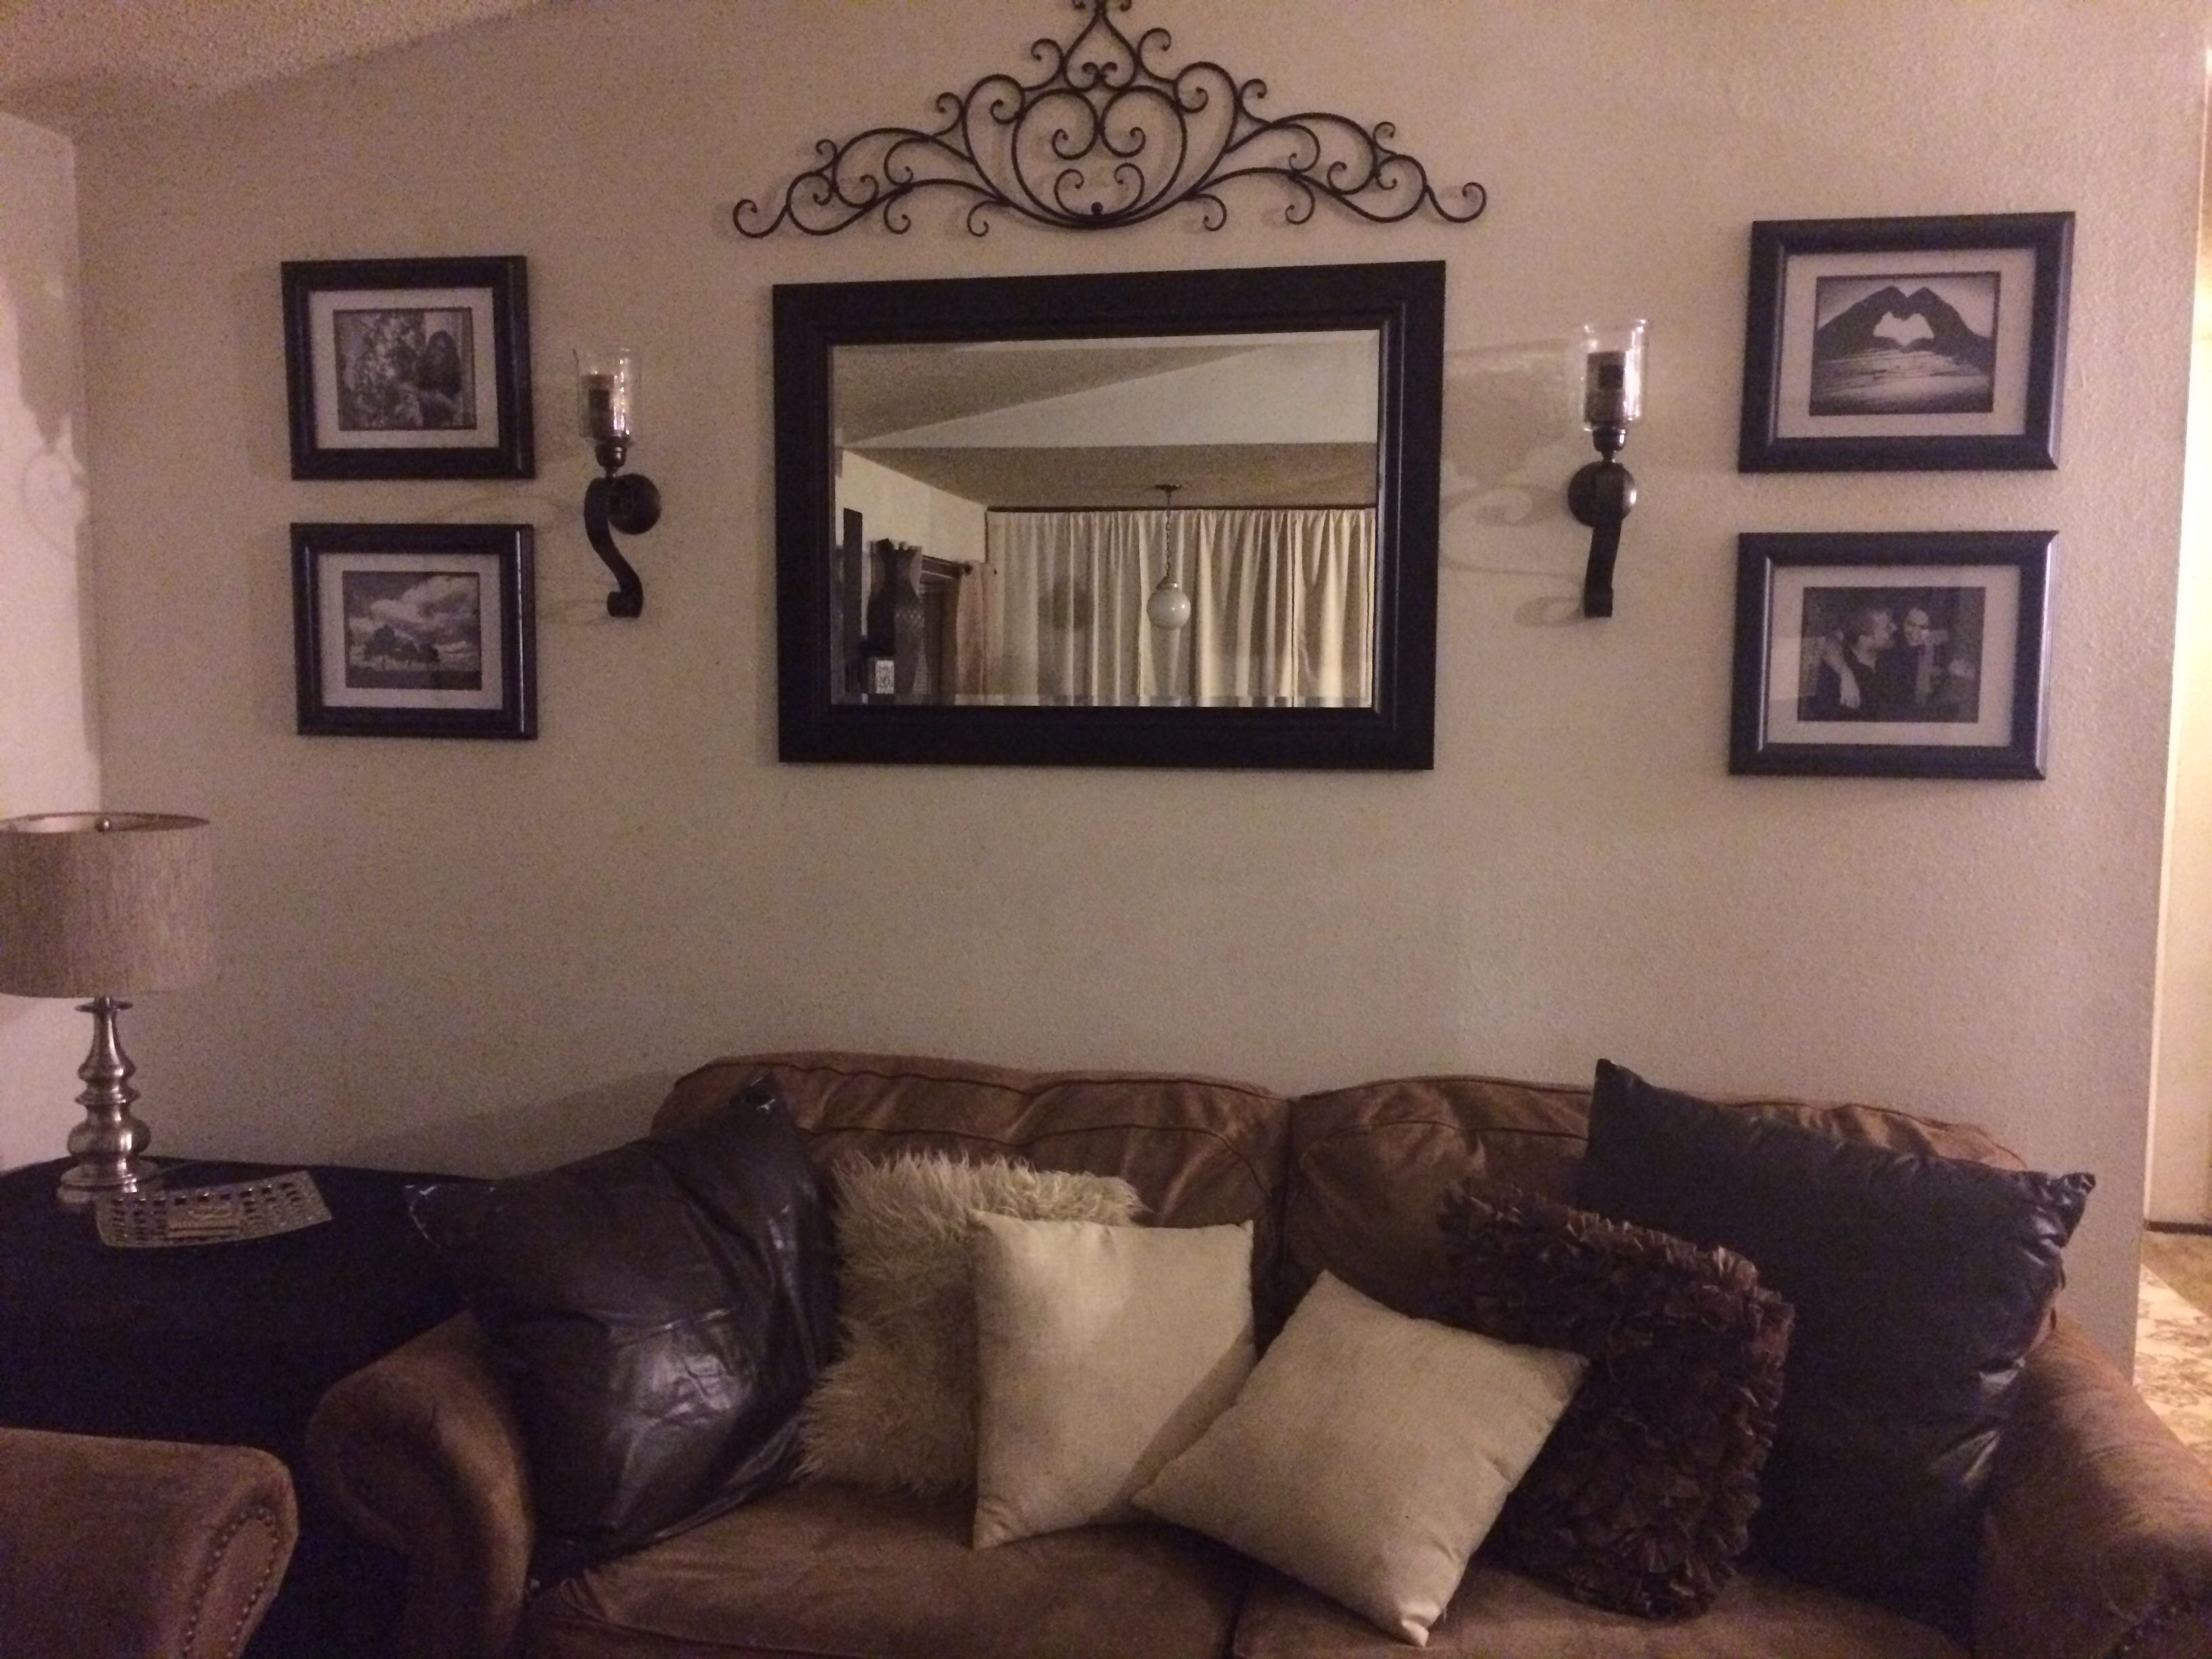 Captivating Behind Couch Wall In Living Room Mirror, Frame, Sconces, And Metal Decor